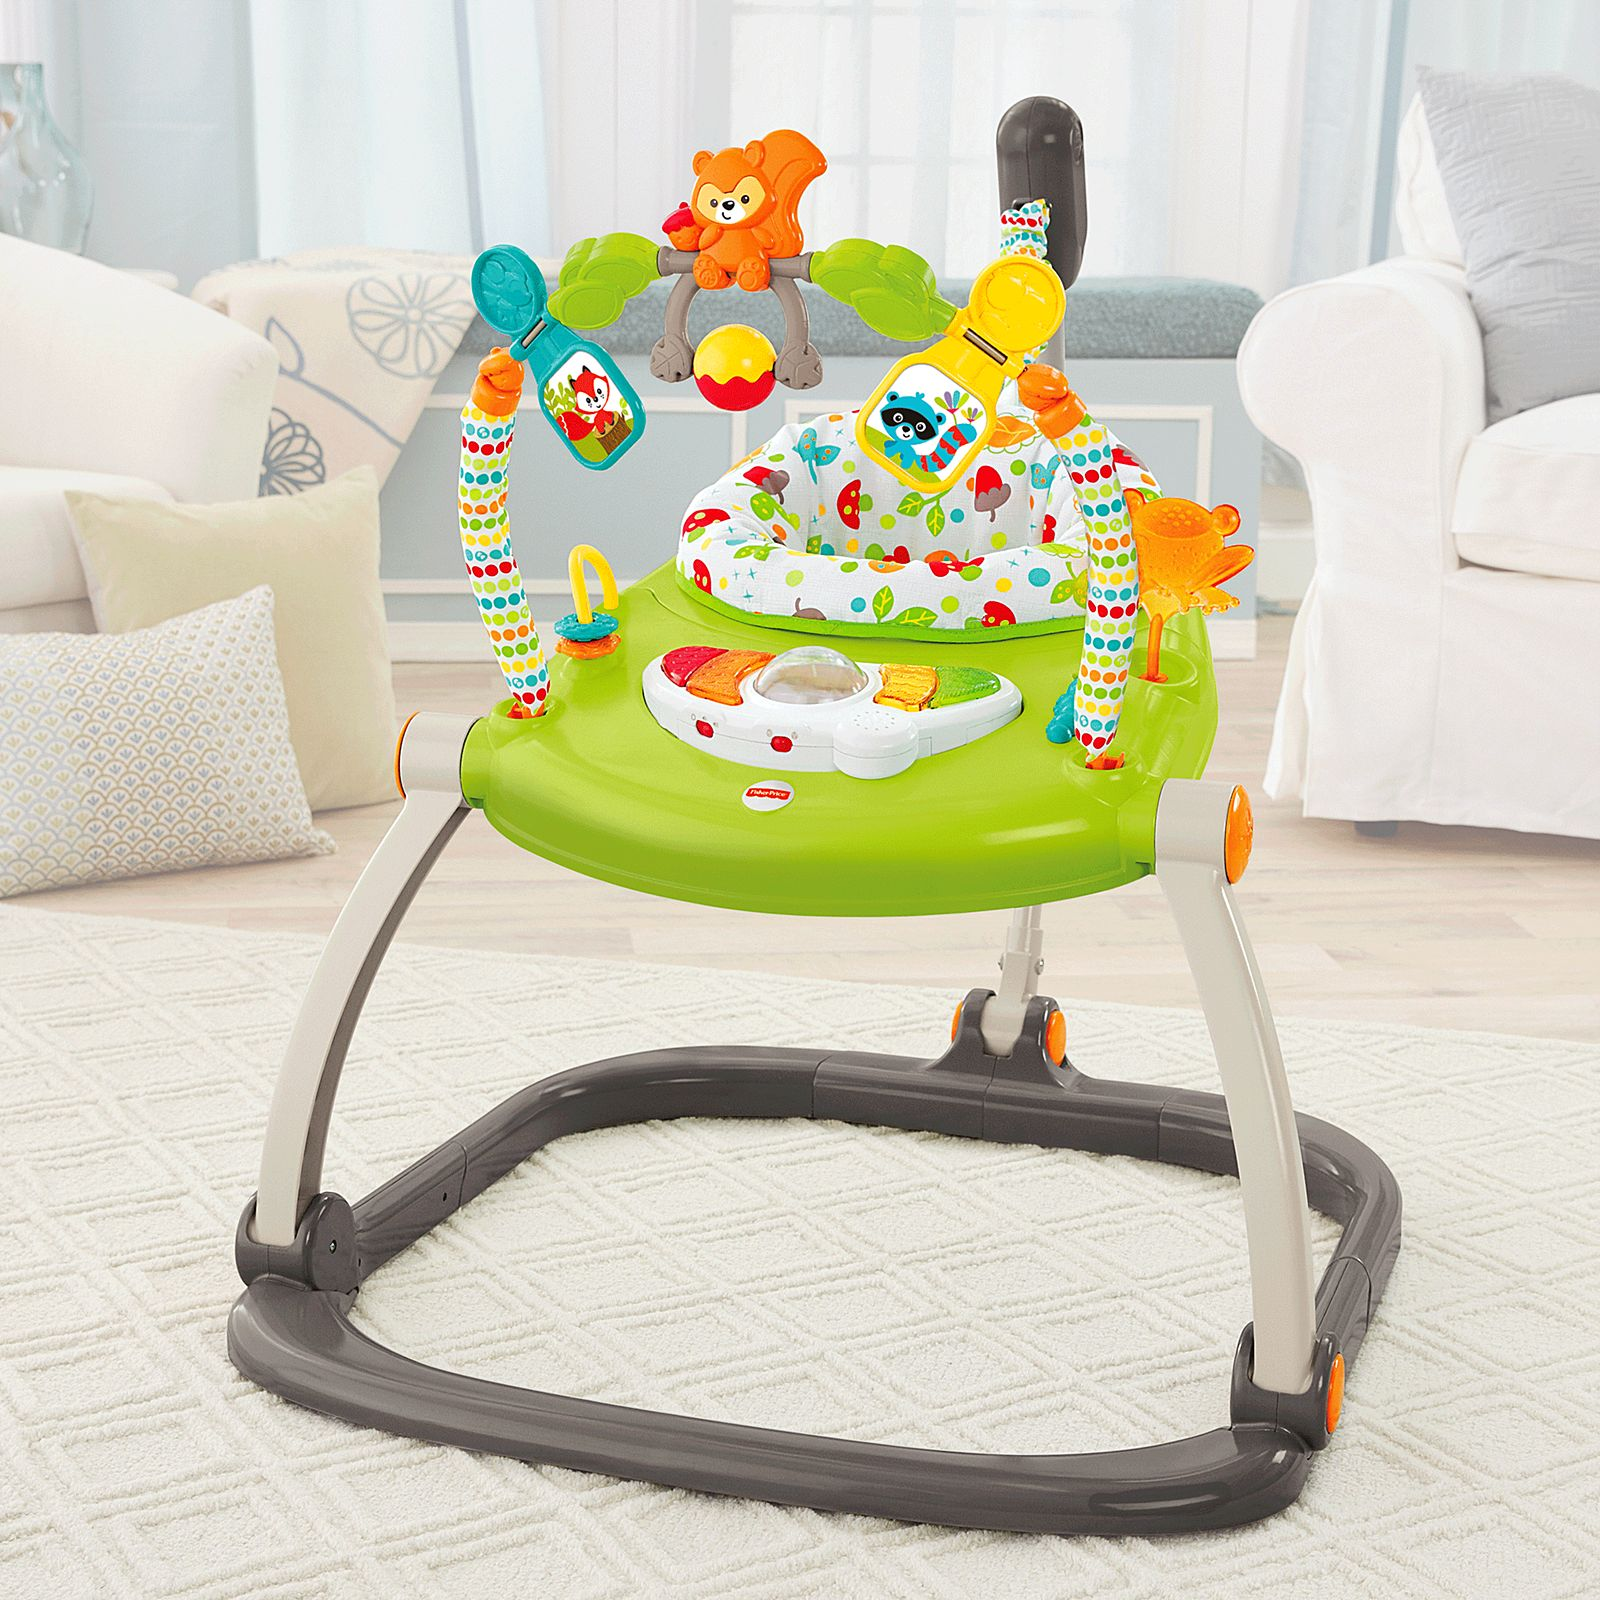 6c96ed5aaf39 Woodland Friends SpaceSaver Jumperoo®